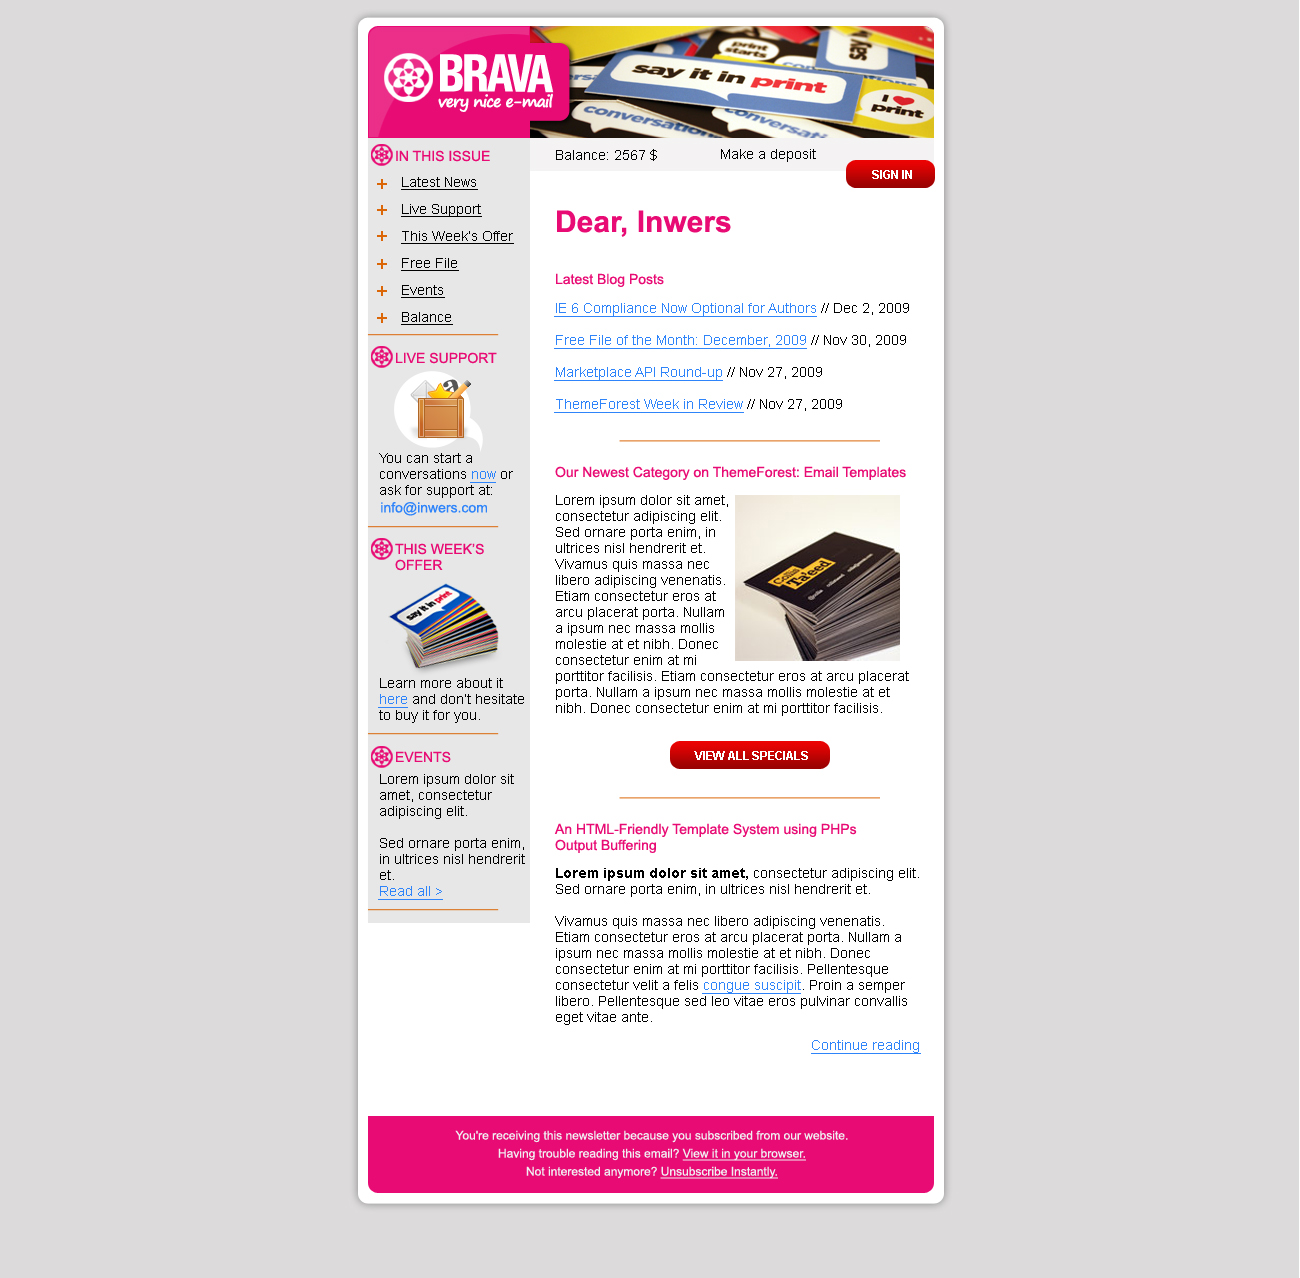 BRAVA - a corporate nice e-mail - Inwers - Brava Pink